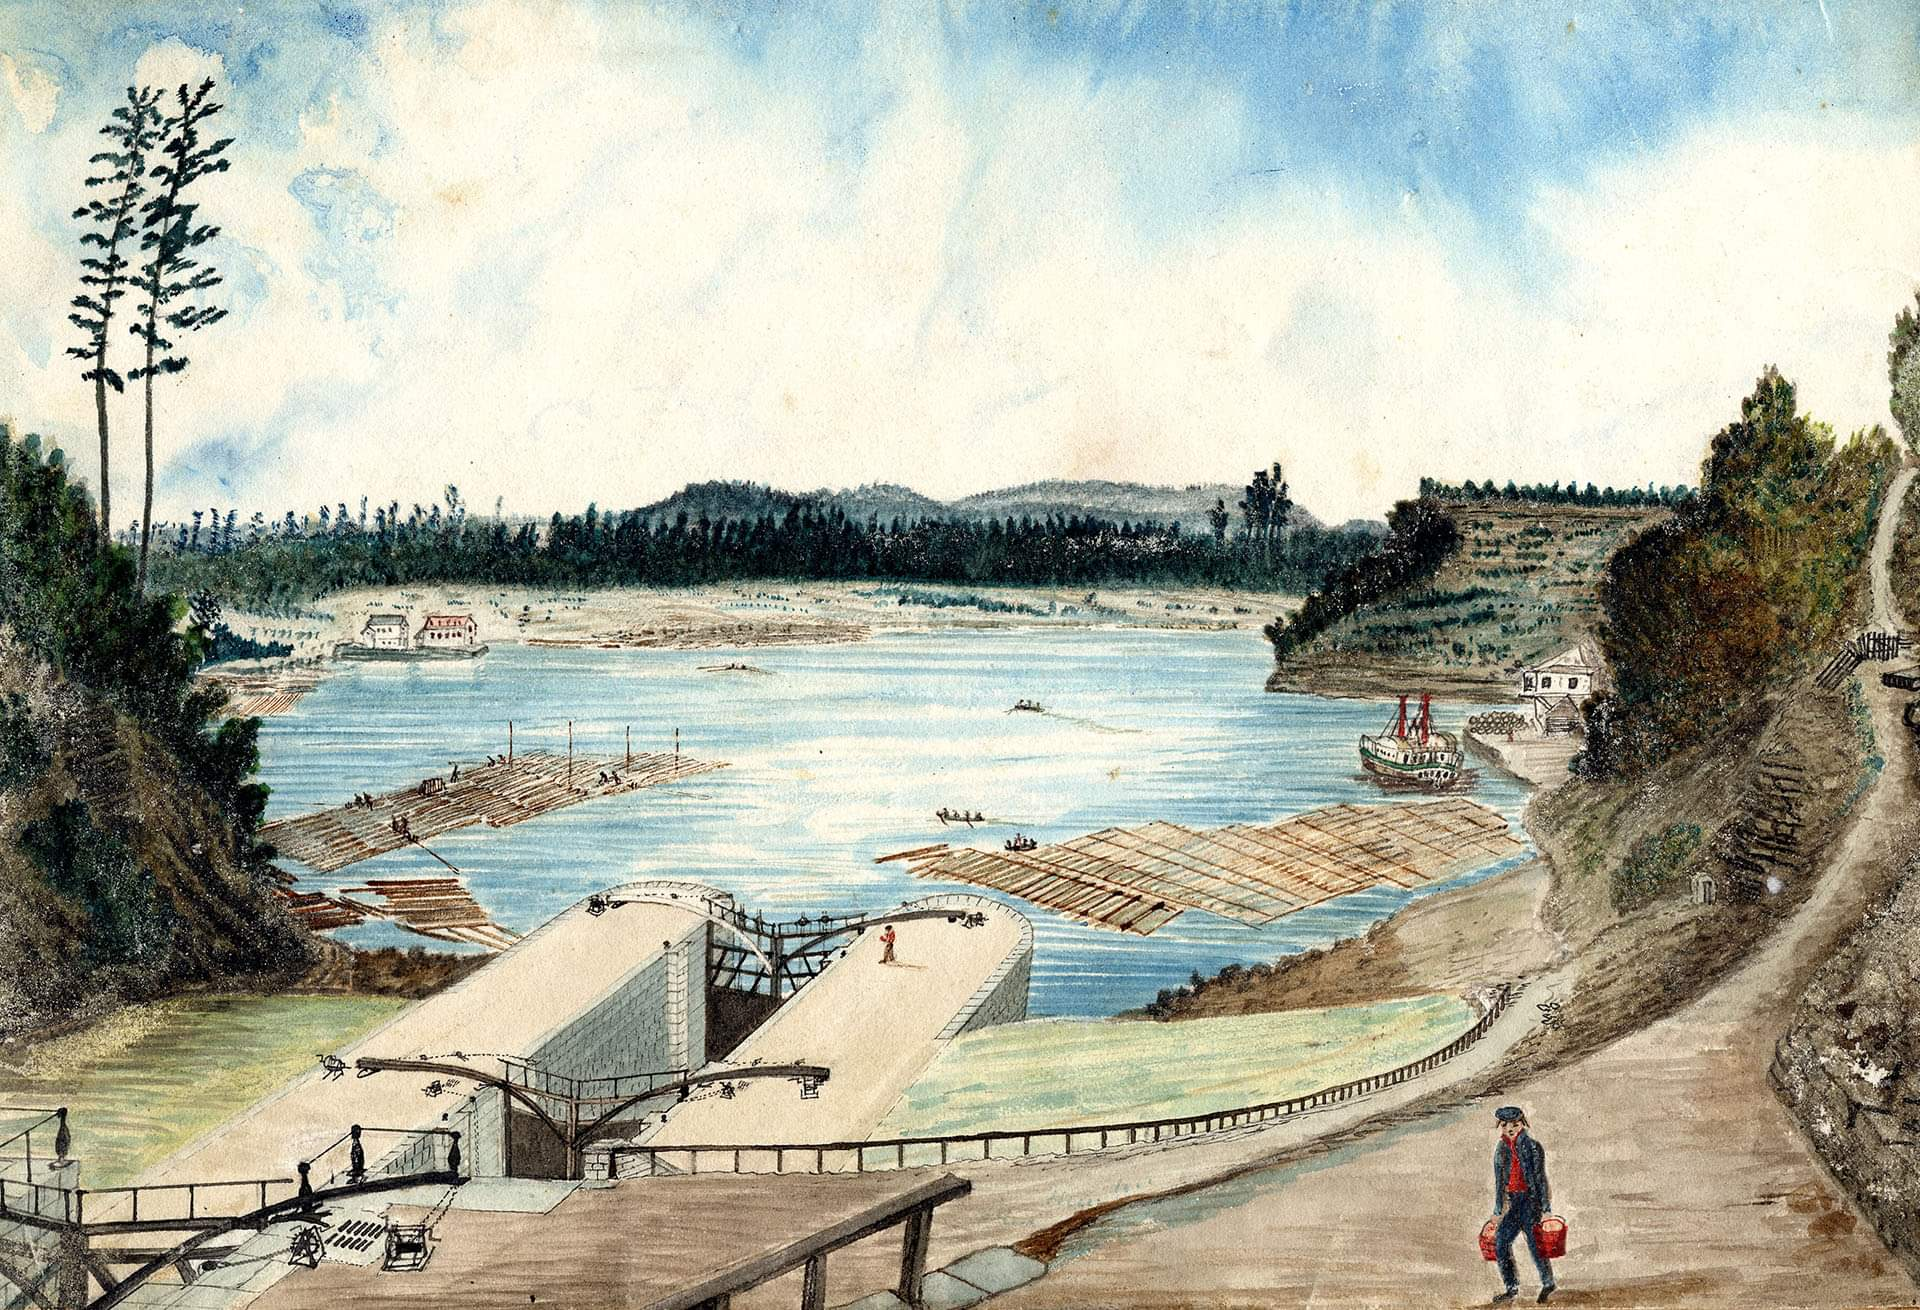 North Entrance of the Rideau Canal from the Ottawa River, 1845